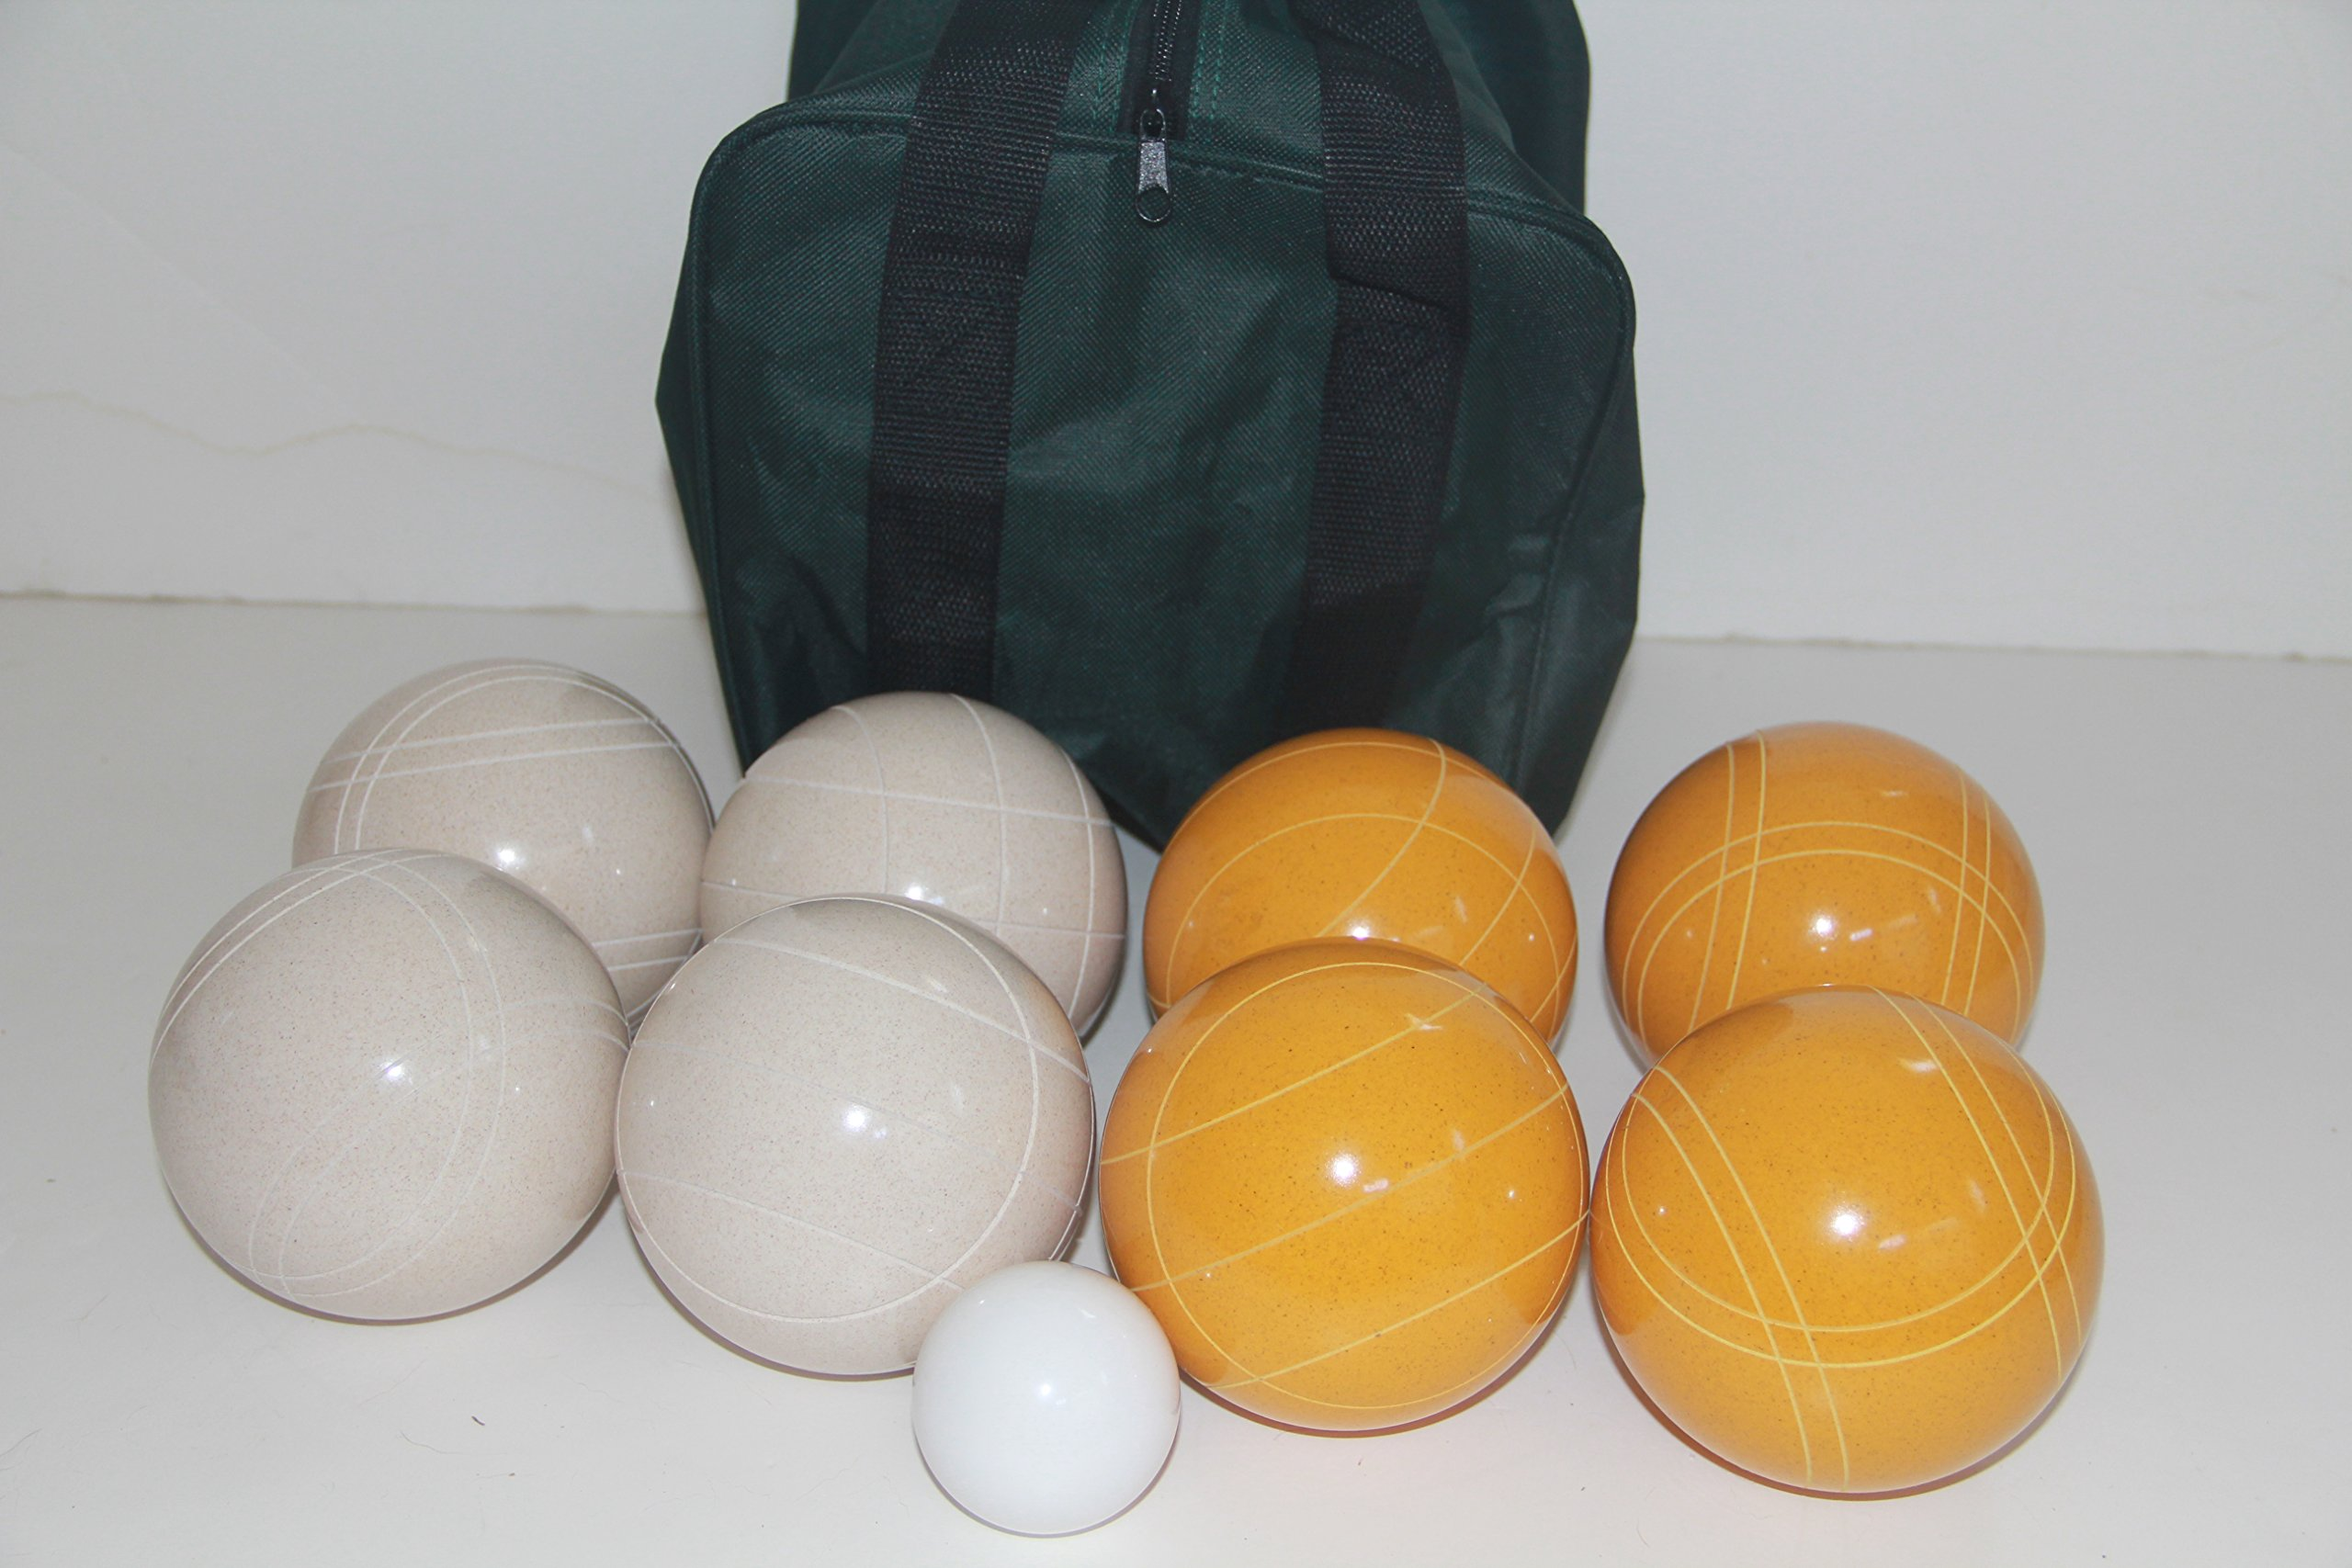 Premium Quality and American Made, 110mm EPCO Bocce Set - Rustic Yellow/White balls and green/black bag